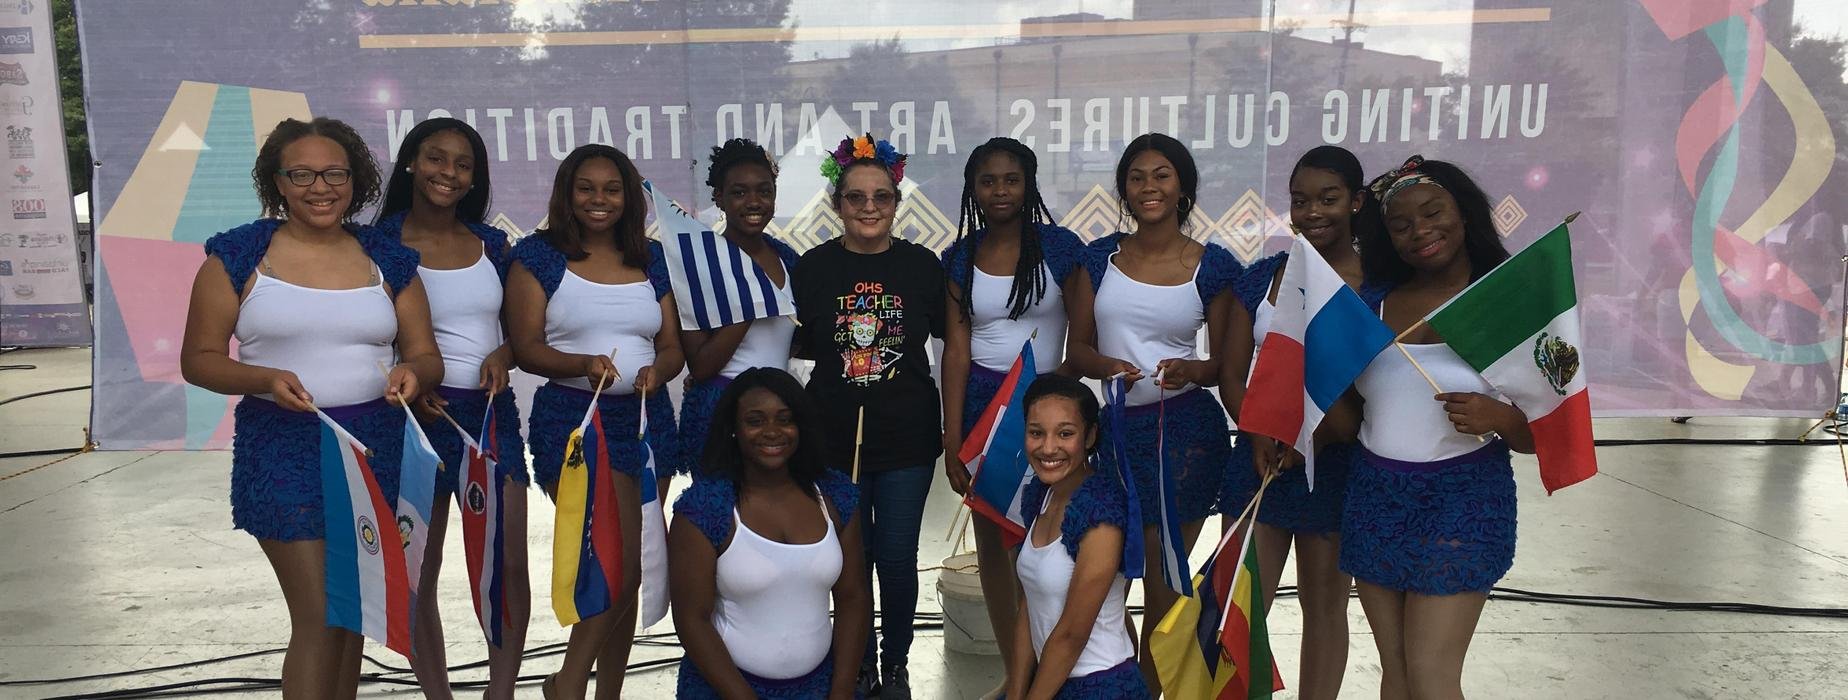 Opelousas High School Spanish Club students dance in the Latin Music Festival, October 6th, 2018, in Lafayette, LA